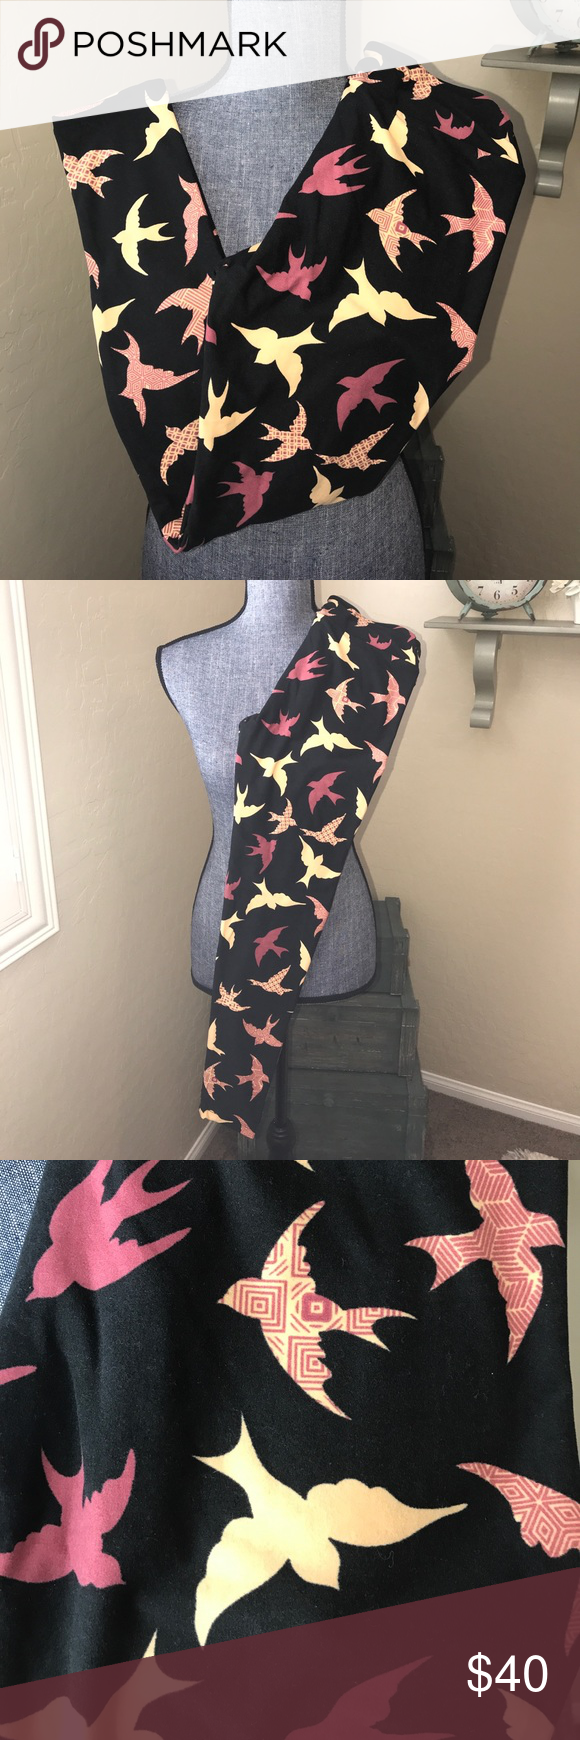 64a8b49c1e10a1 New Lularoe OS Bird Leggings These are gorgeous!! Black background with  light tan and